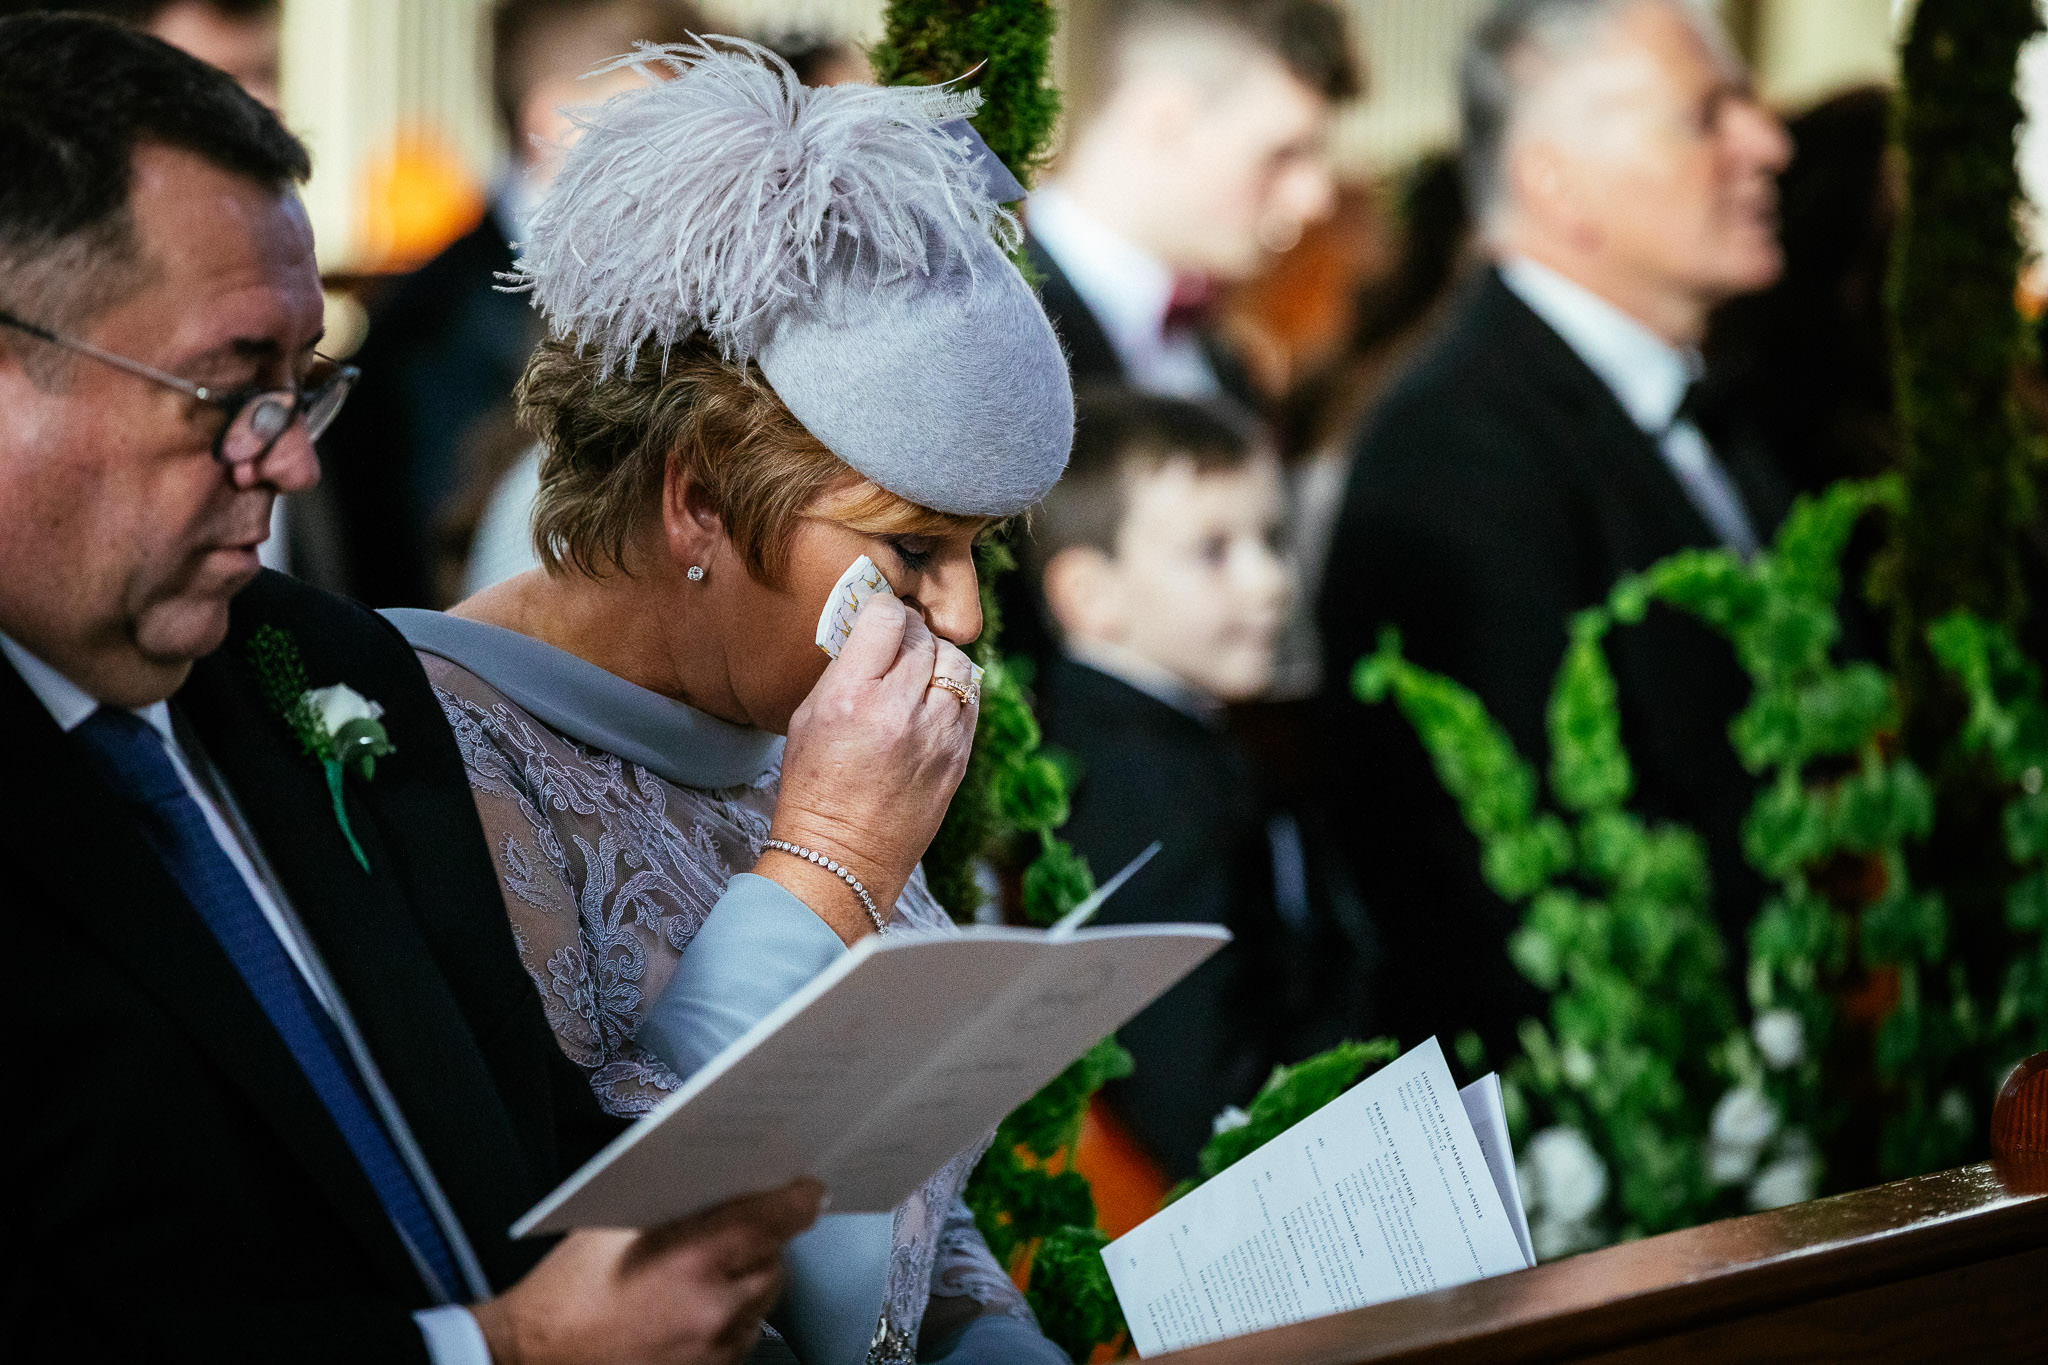 mother of groom wiping a tear during wedding ceremony at St Brigid's Church Oldcastle